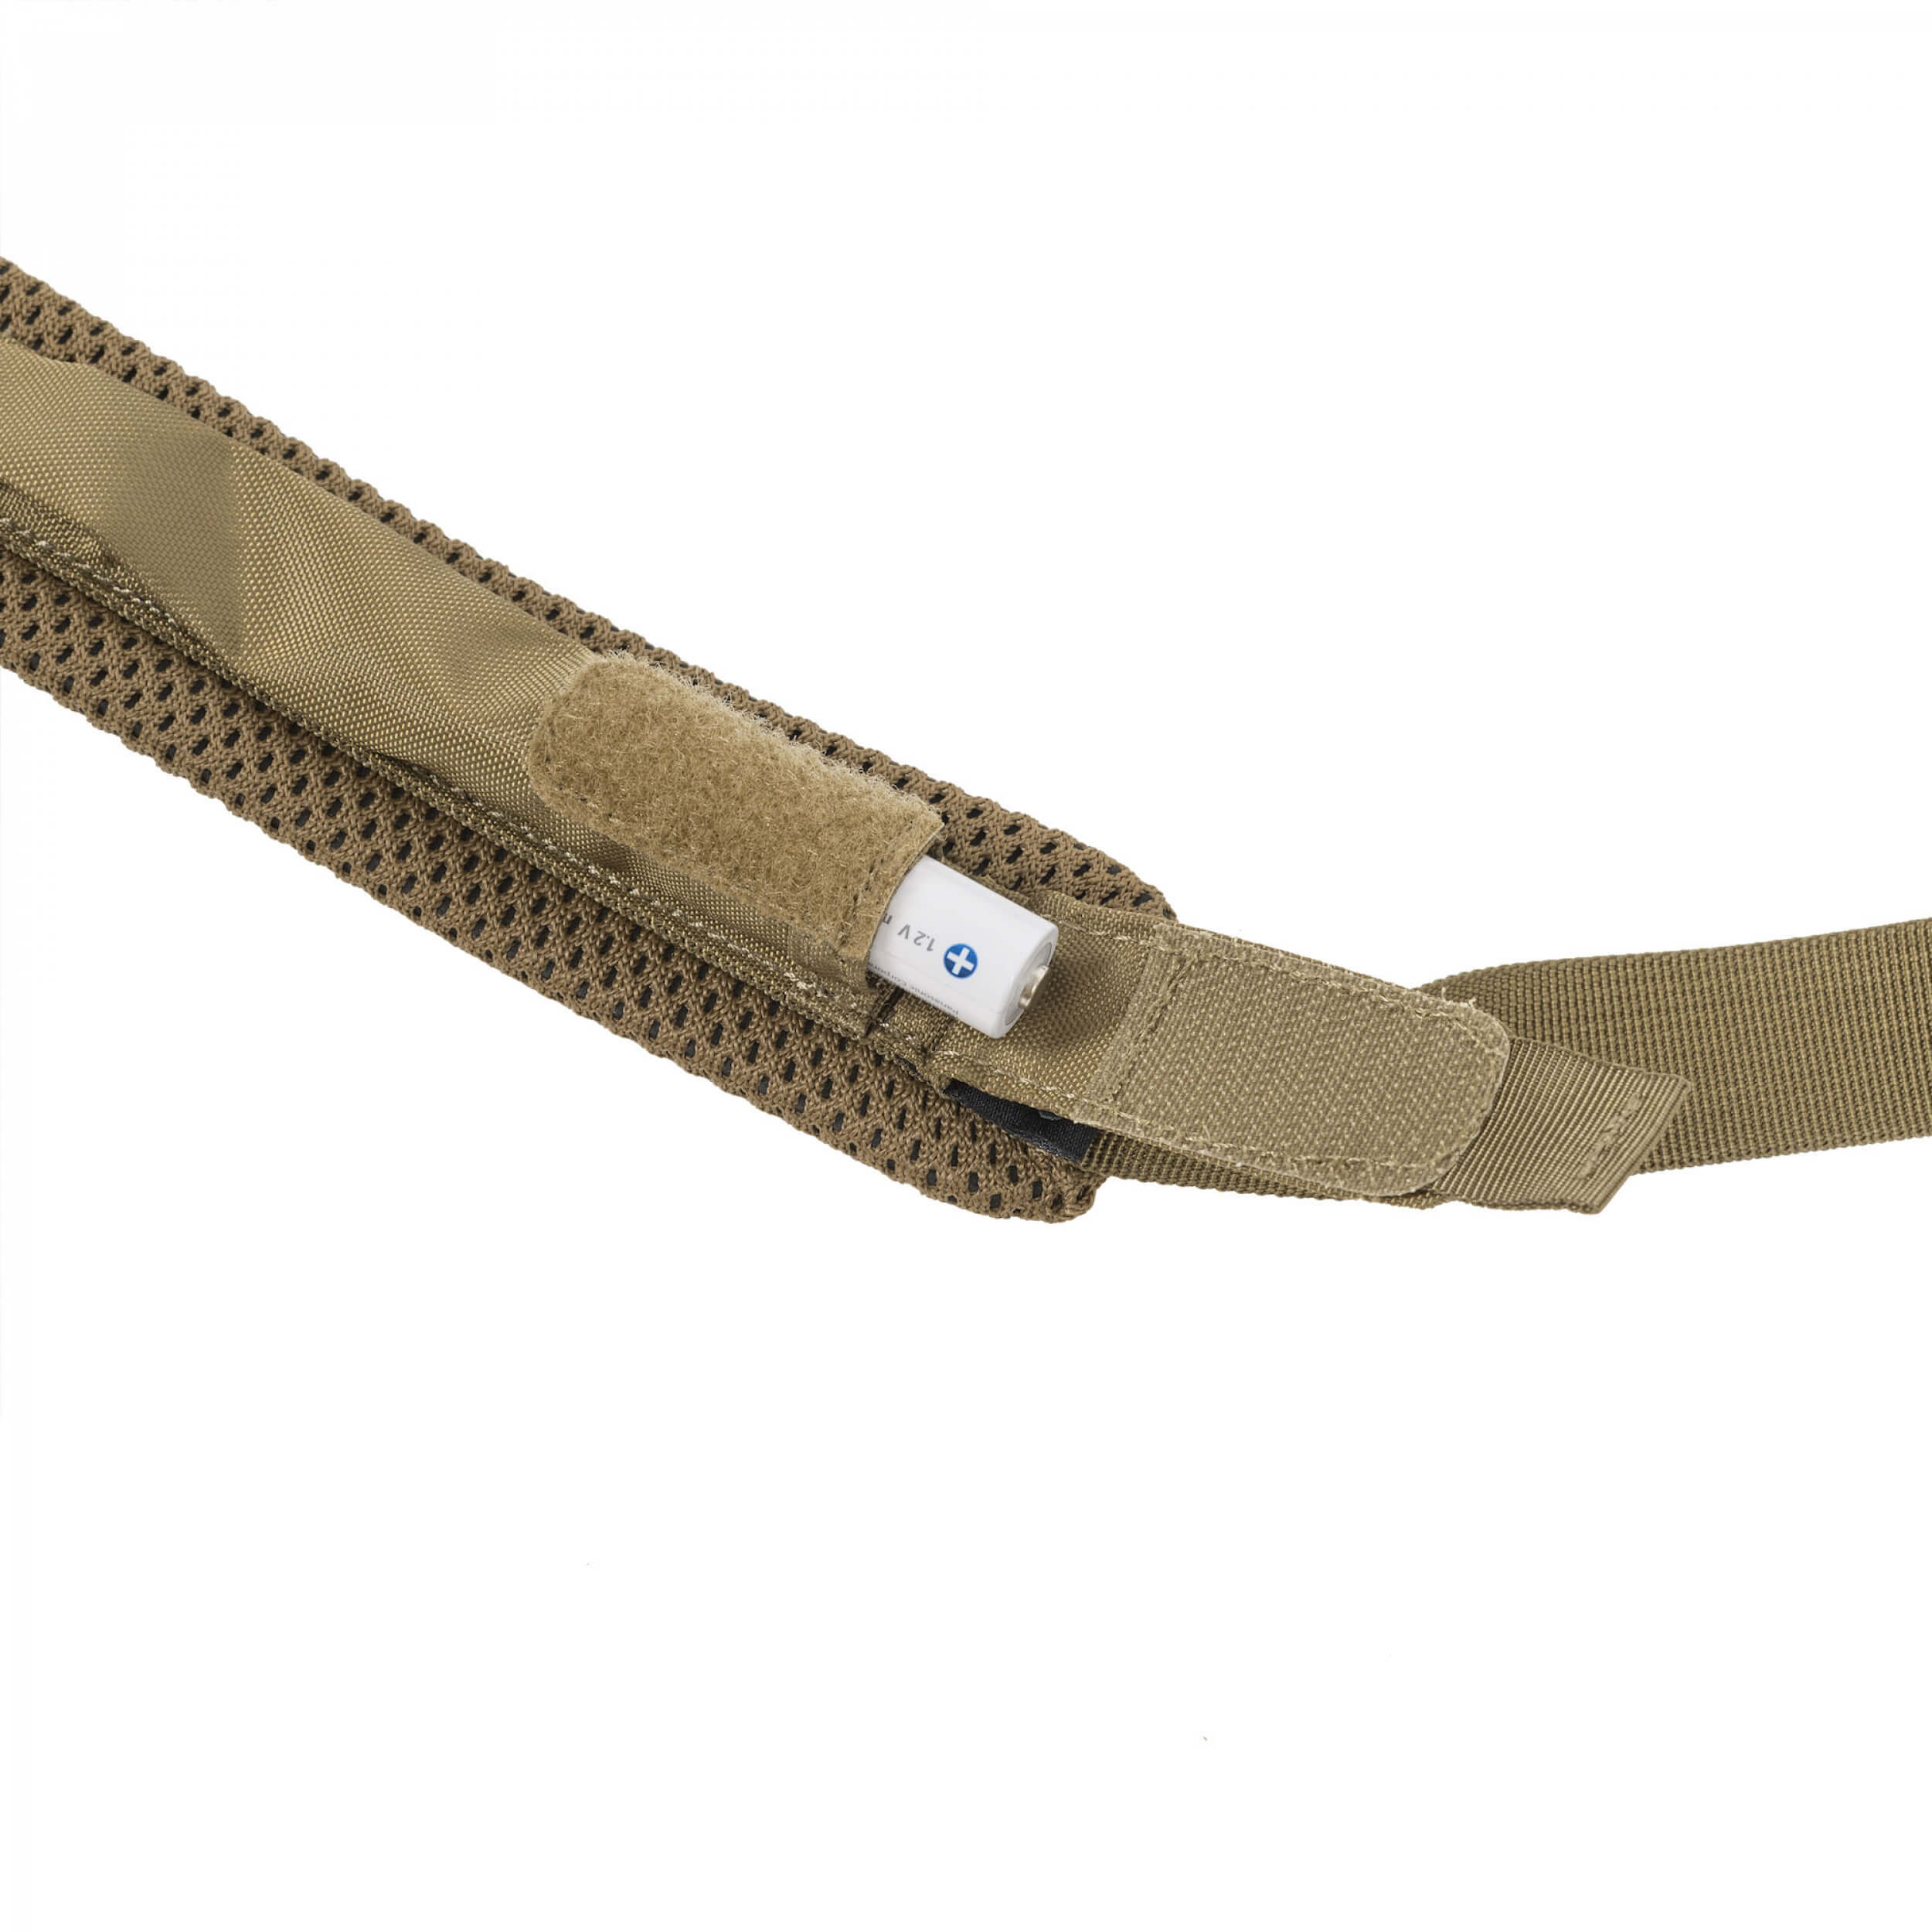 Helikon-Tex Two Point Carbine Sling (Gewehrriemen) - Polyester - Coyote